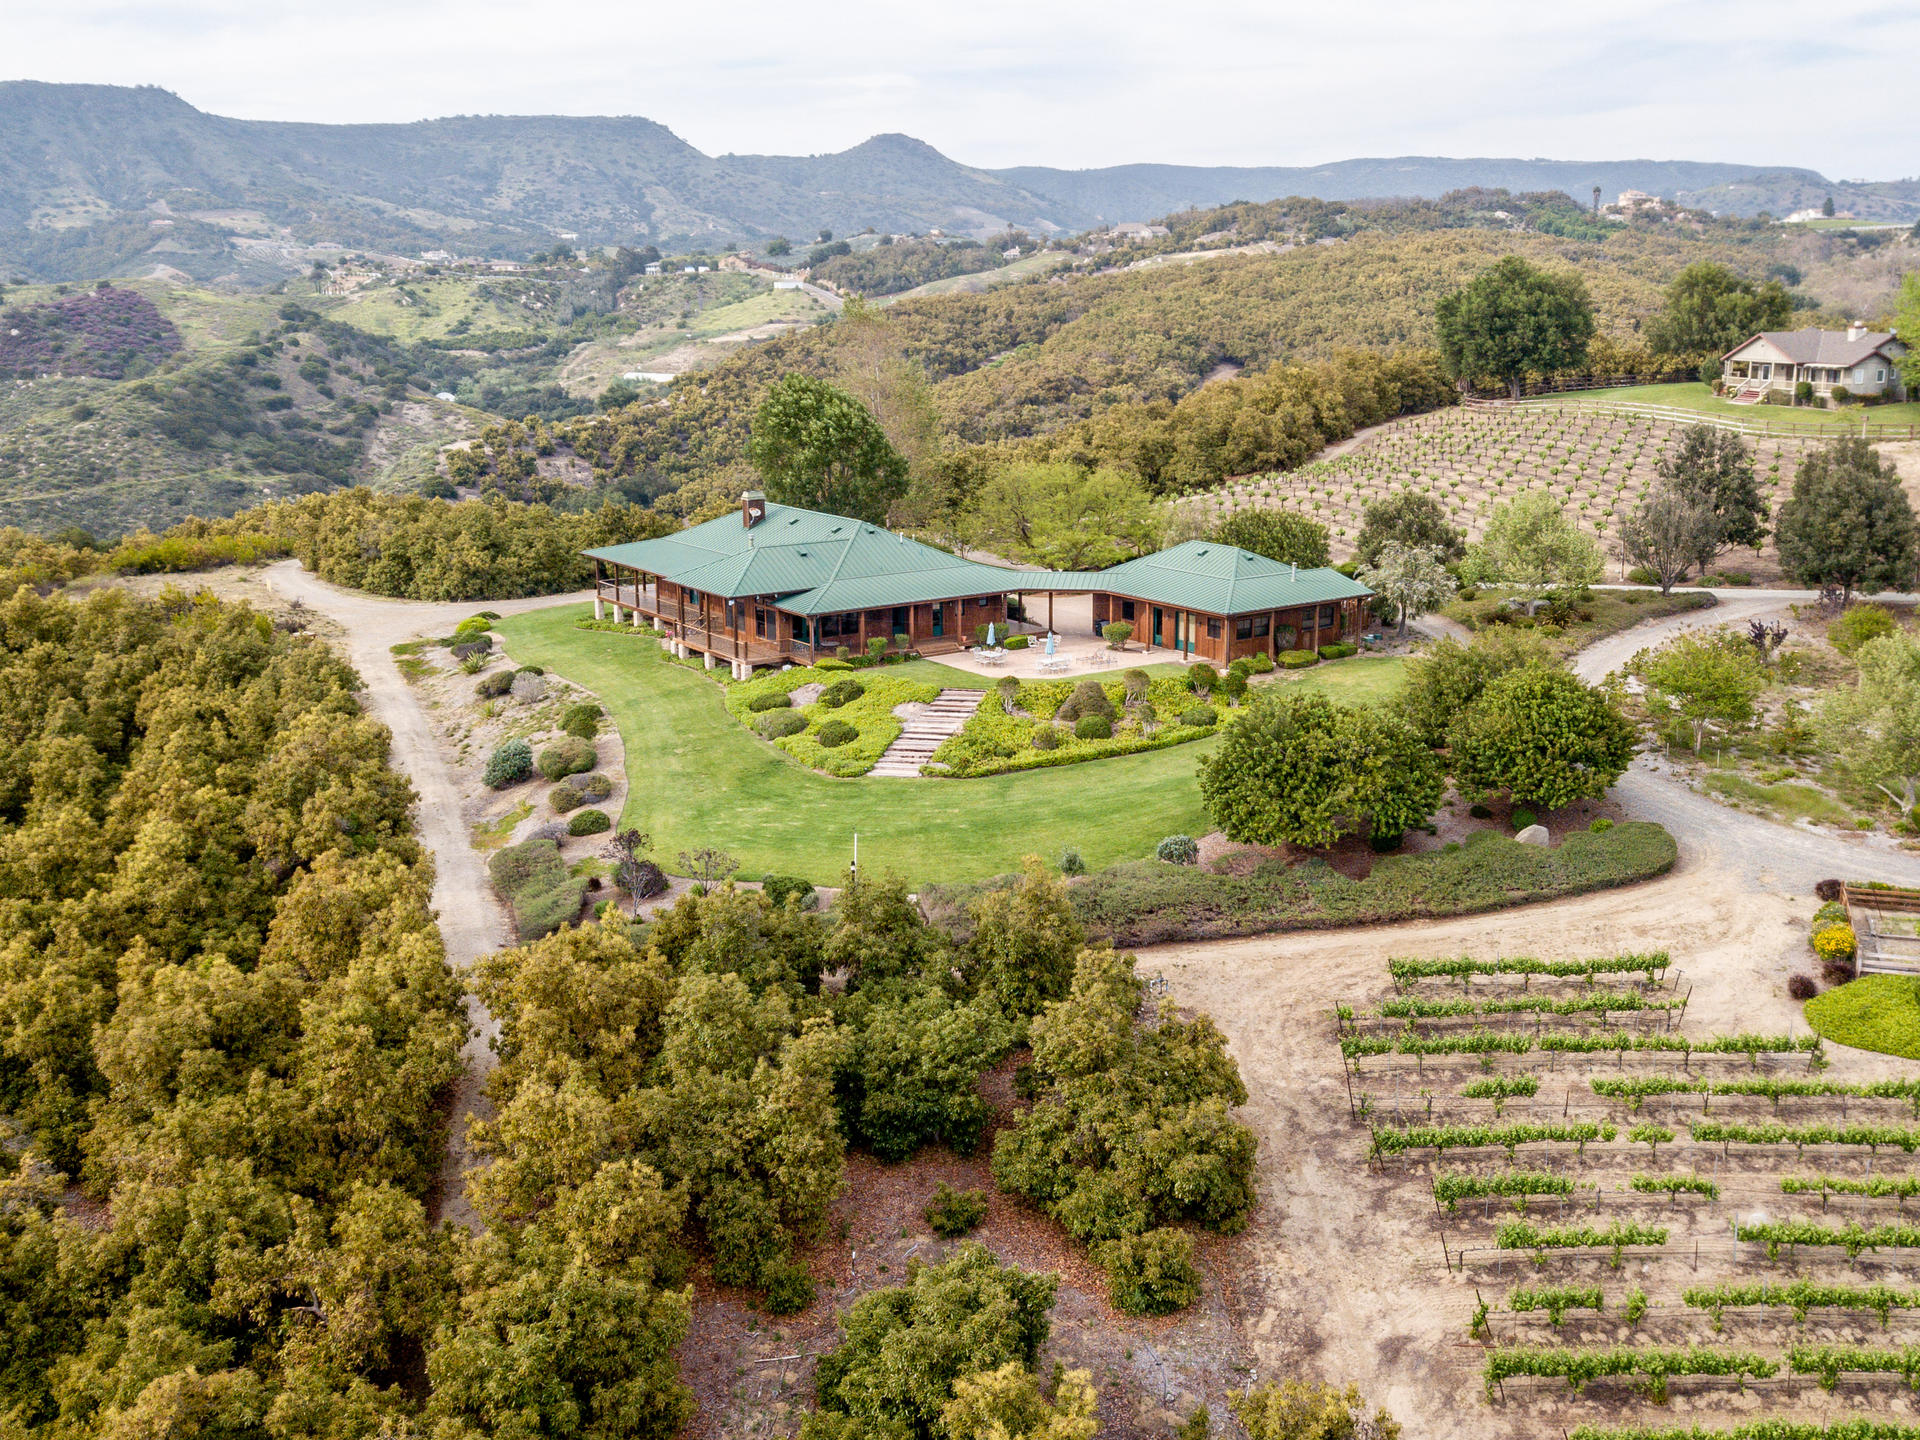 Randhawa Ranch Overview; Lower House and Barn Deck Left. No access to Upper House